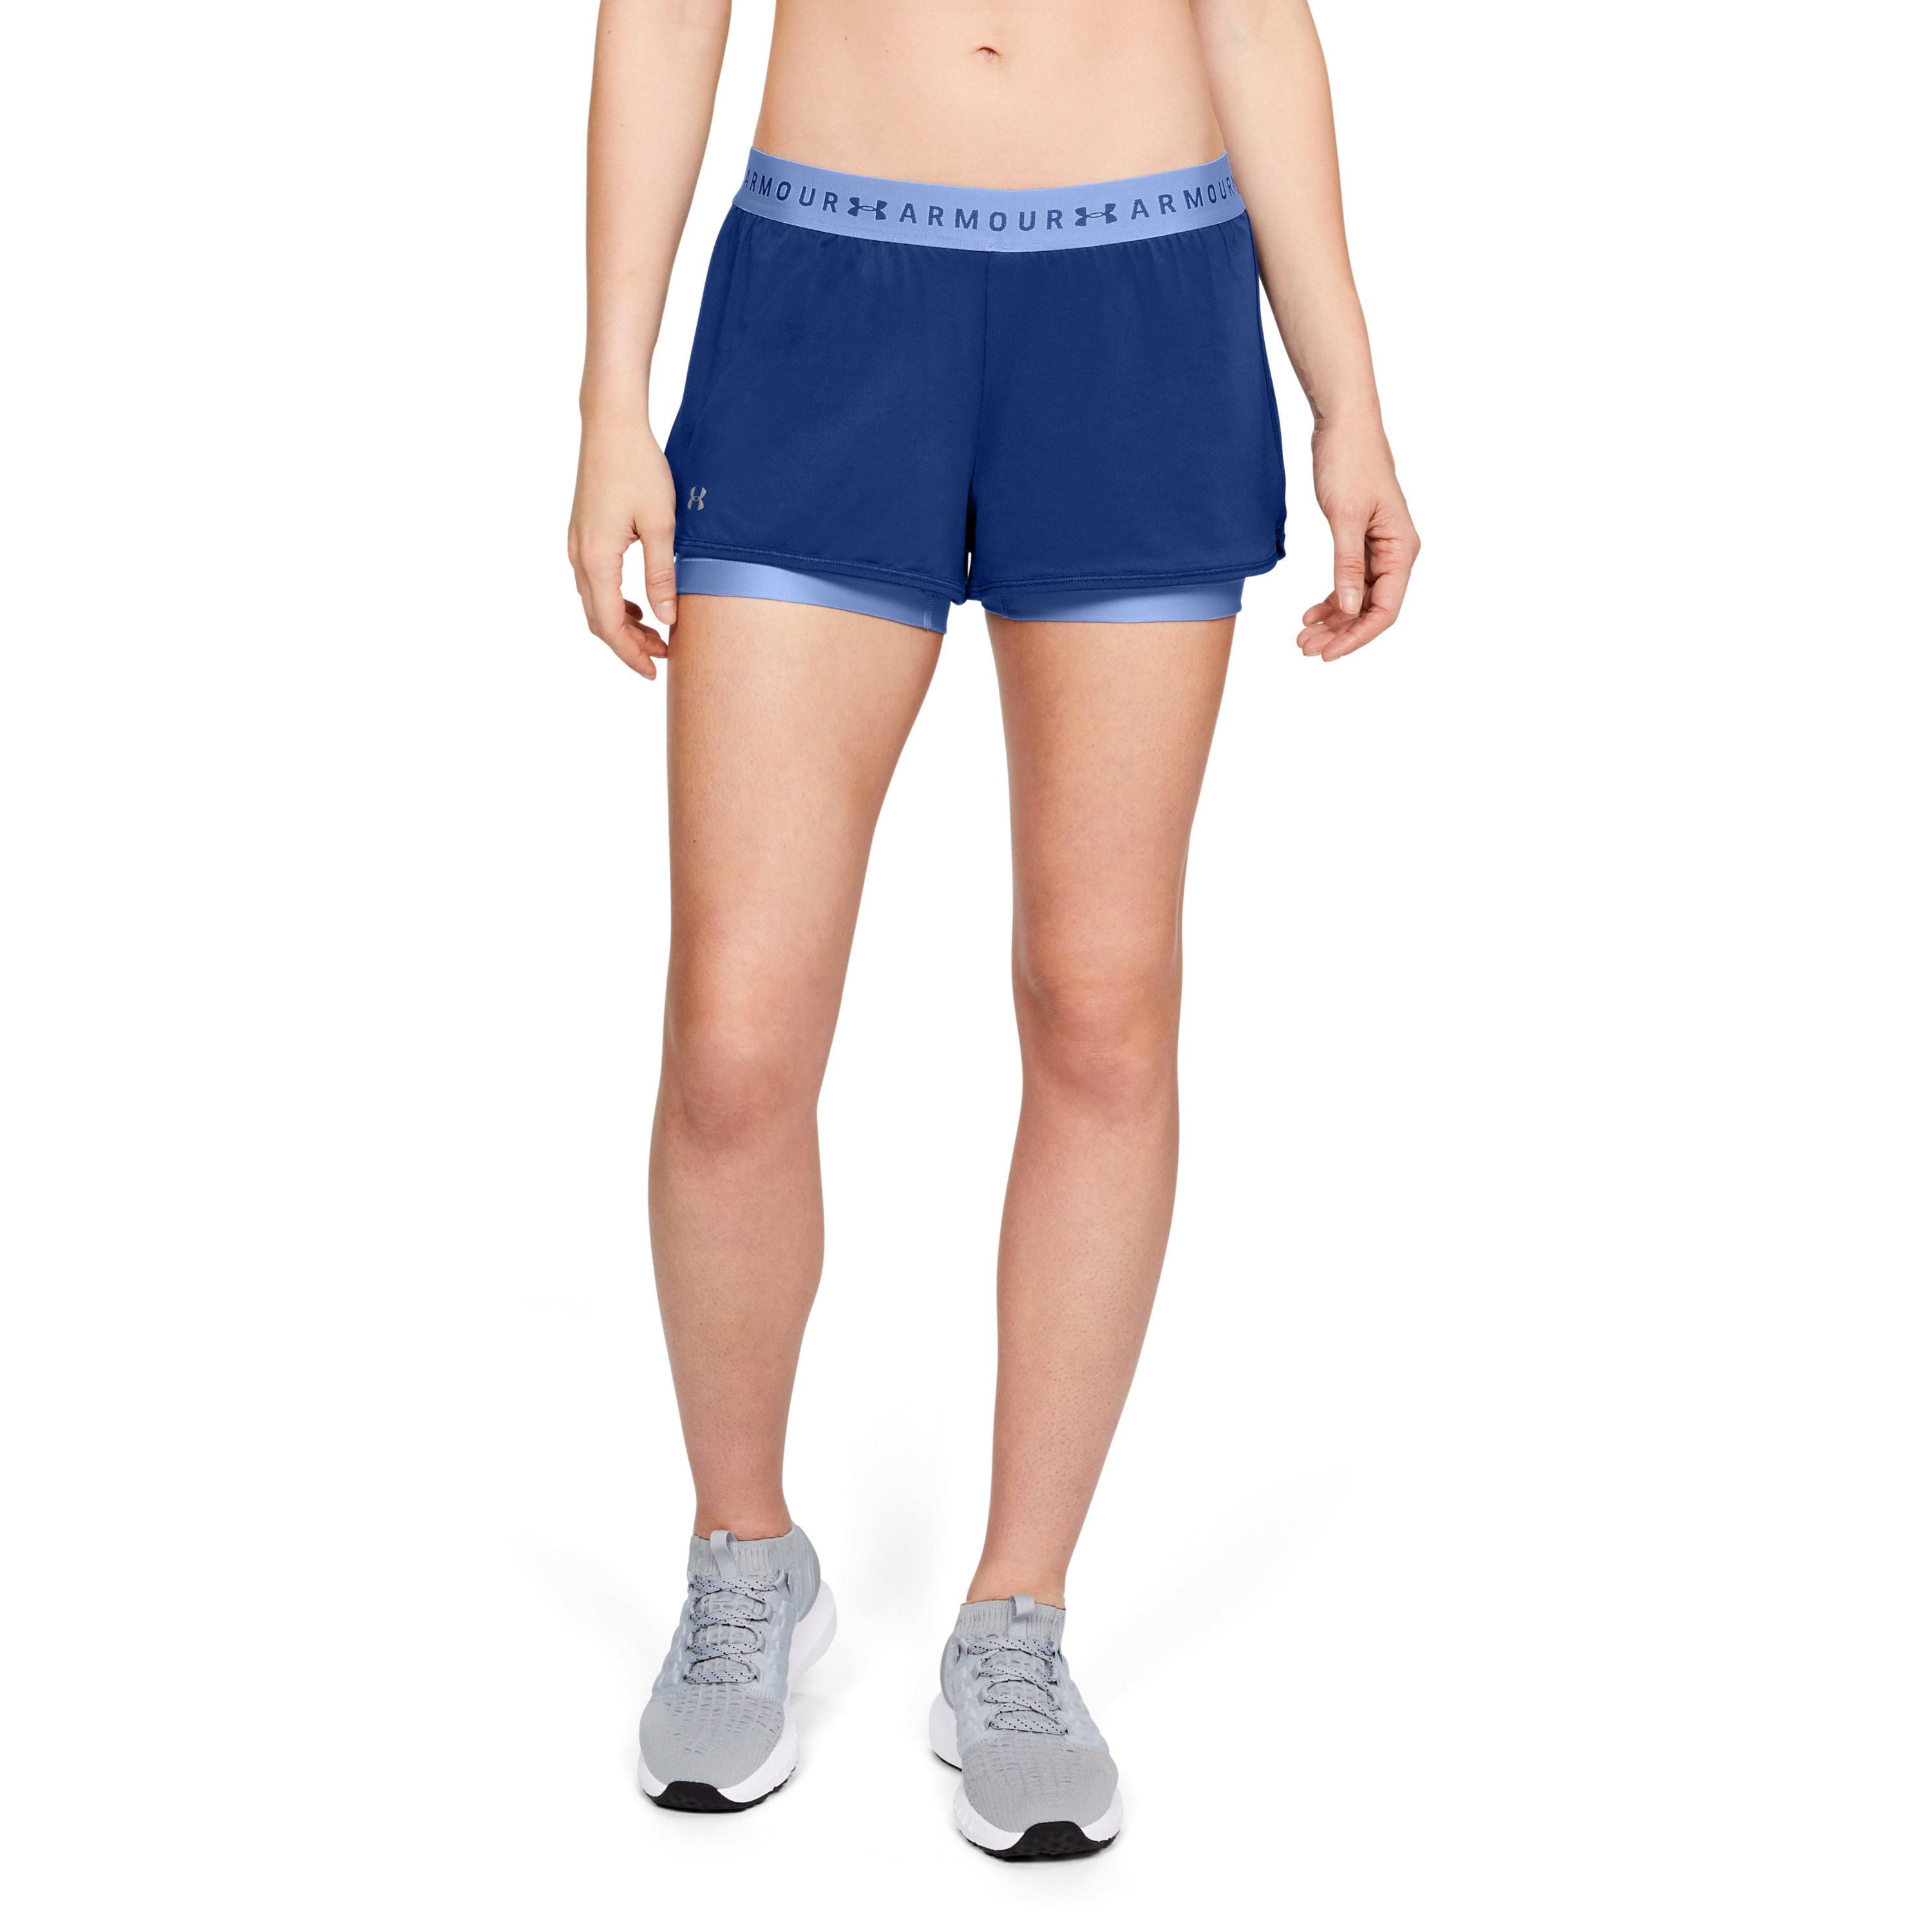 287ddfca77e4a Lyst - Under Armour Women s Heatgear® Armour 2-in-1 Shorts in Blue